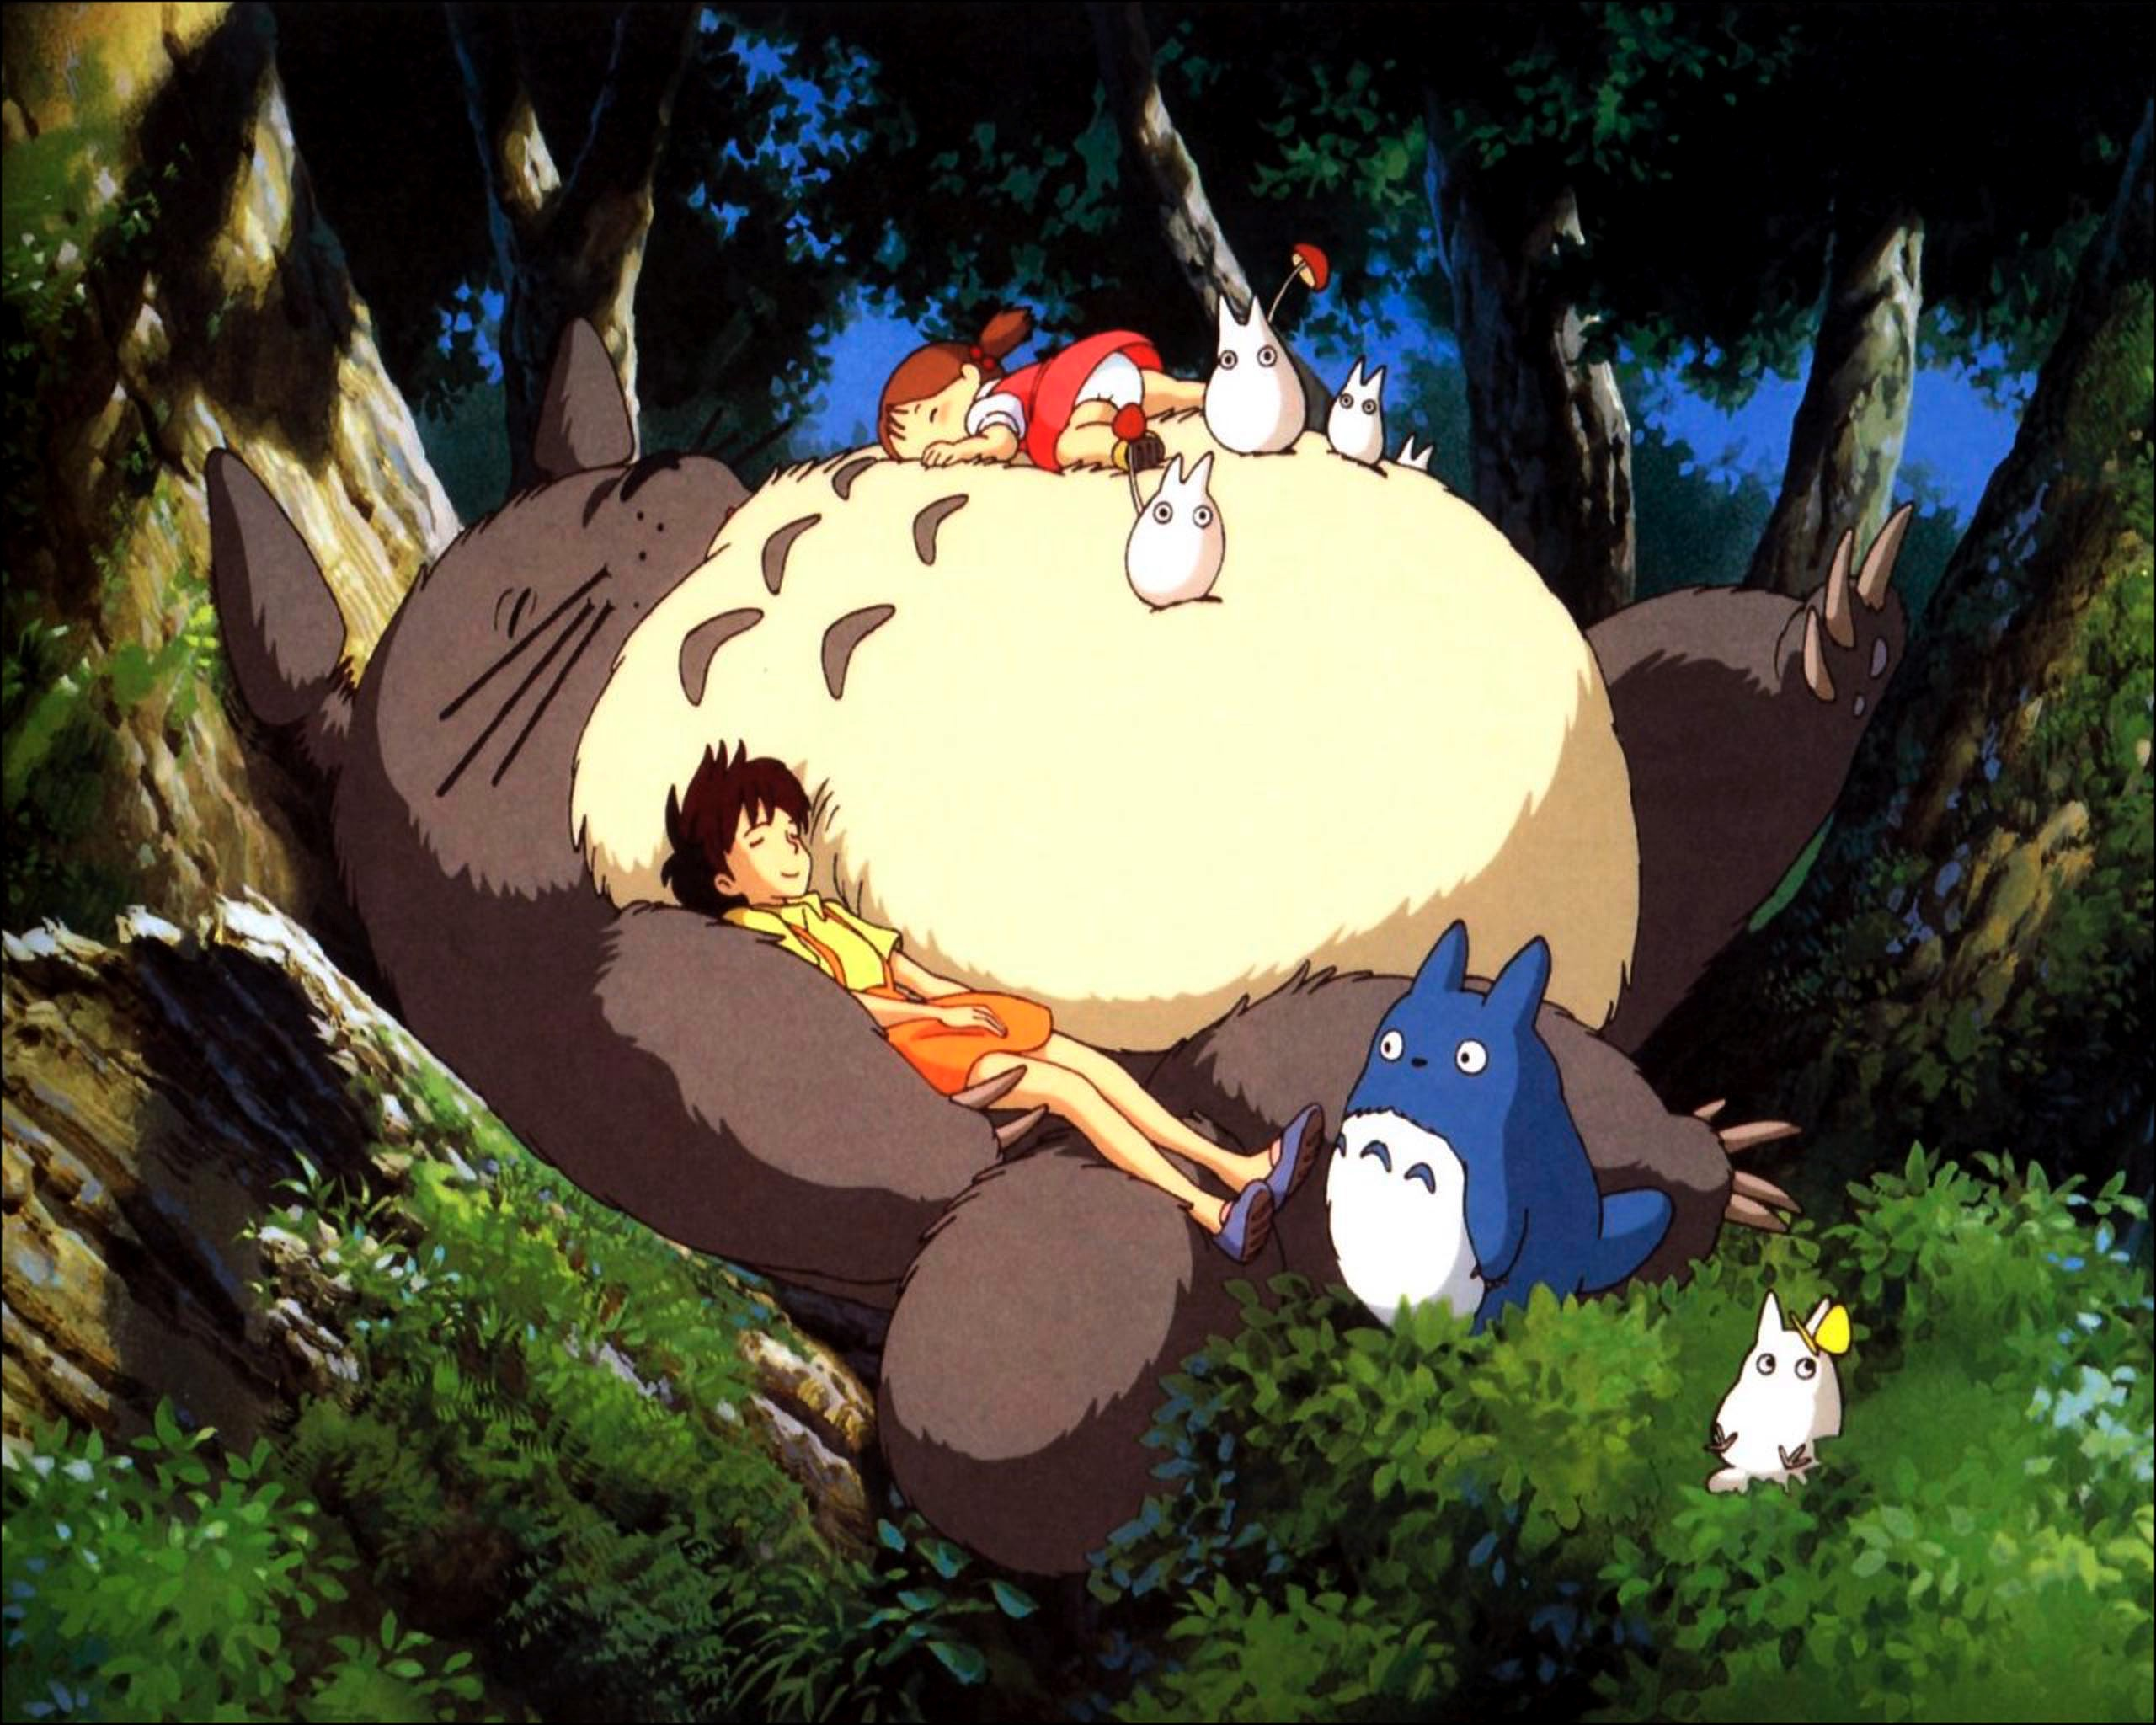 Studio Ghibli Films Available for Digital Purchase for First Time